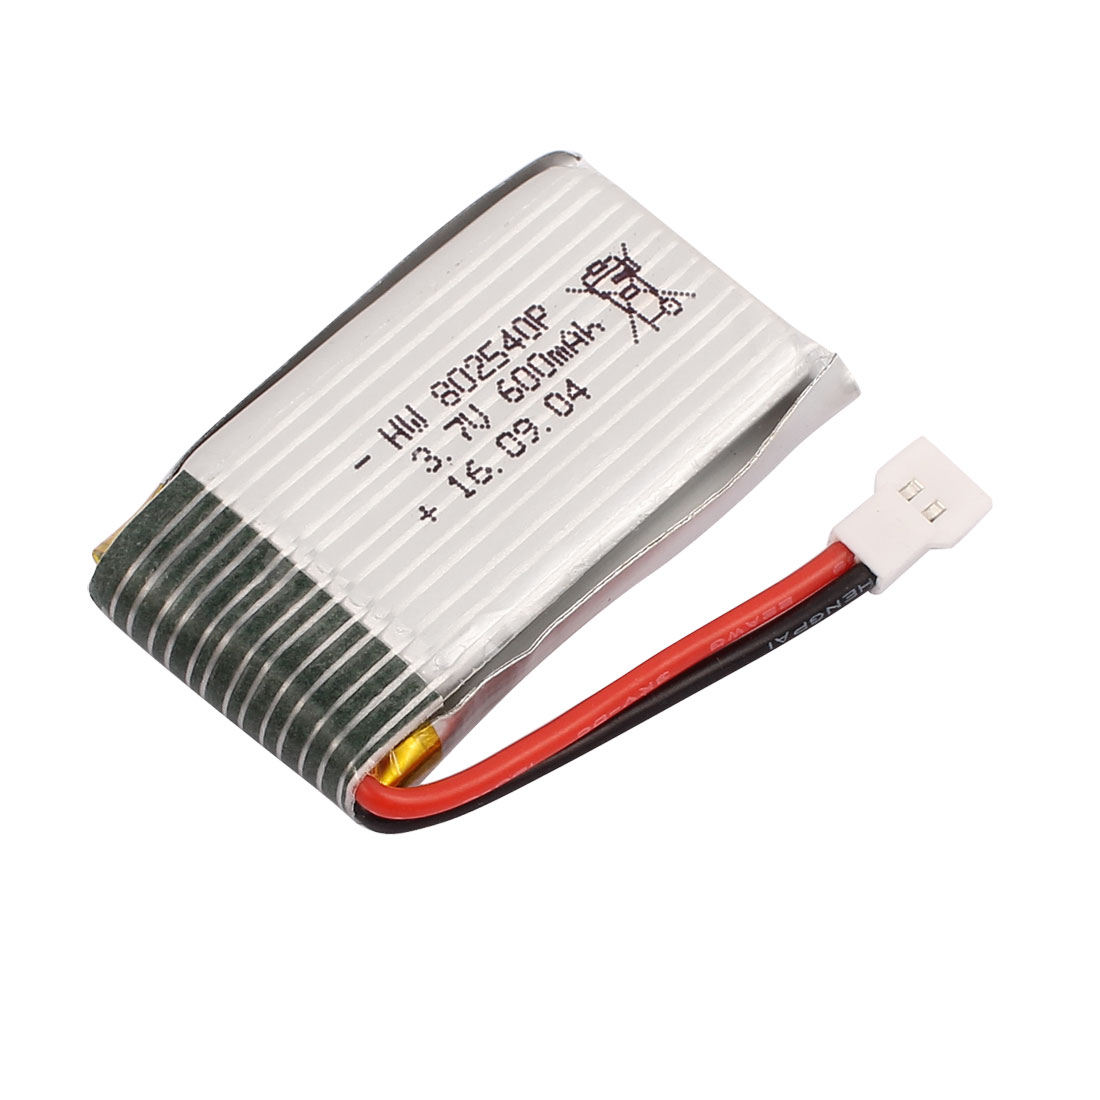 3.7V 600mAh Charging Lithium Polymer Li-po Battery MX2.0-2P Connector for RC Airplane Aircraft